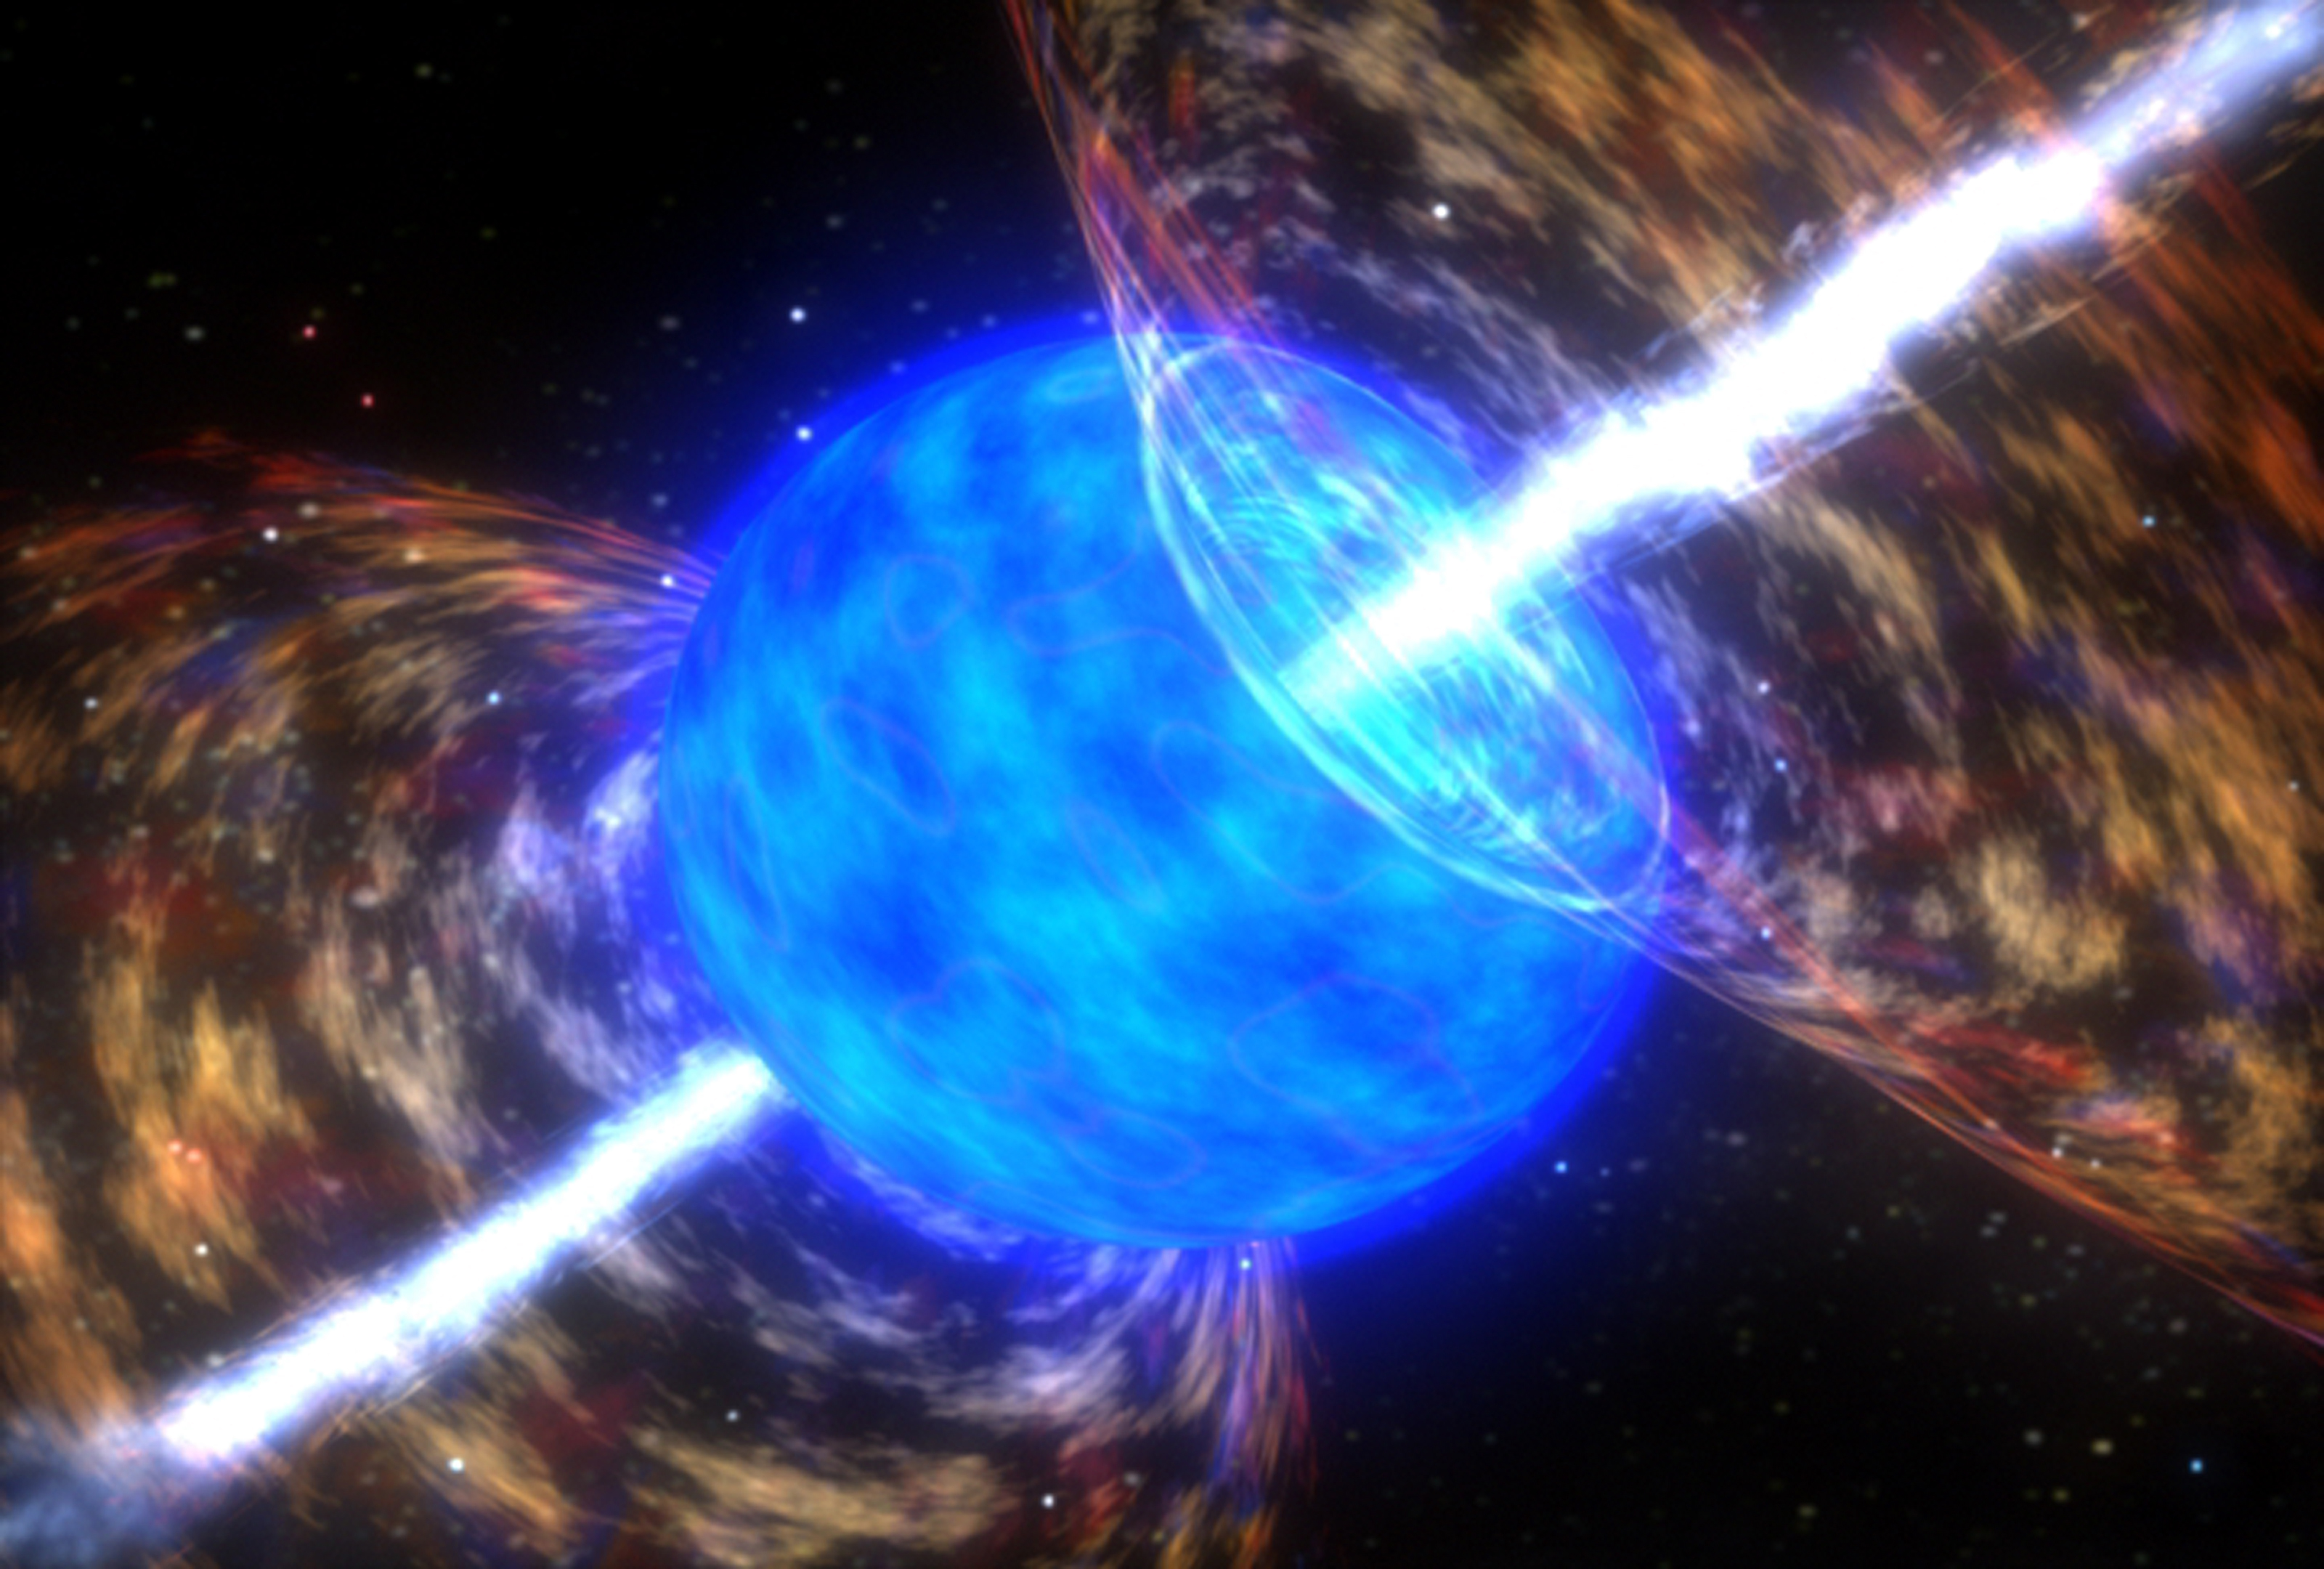 A scene from a computer animation of a star collapsing to form a gamma-ray burst. A recent study suggests such events could happen on a much larger scale in the distant universe. [NASA / SkyWorks Digital]